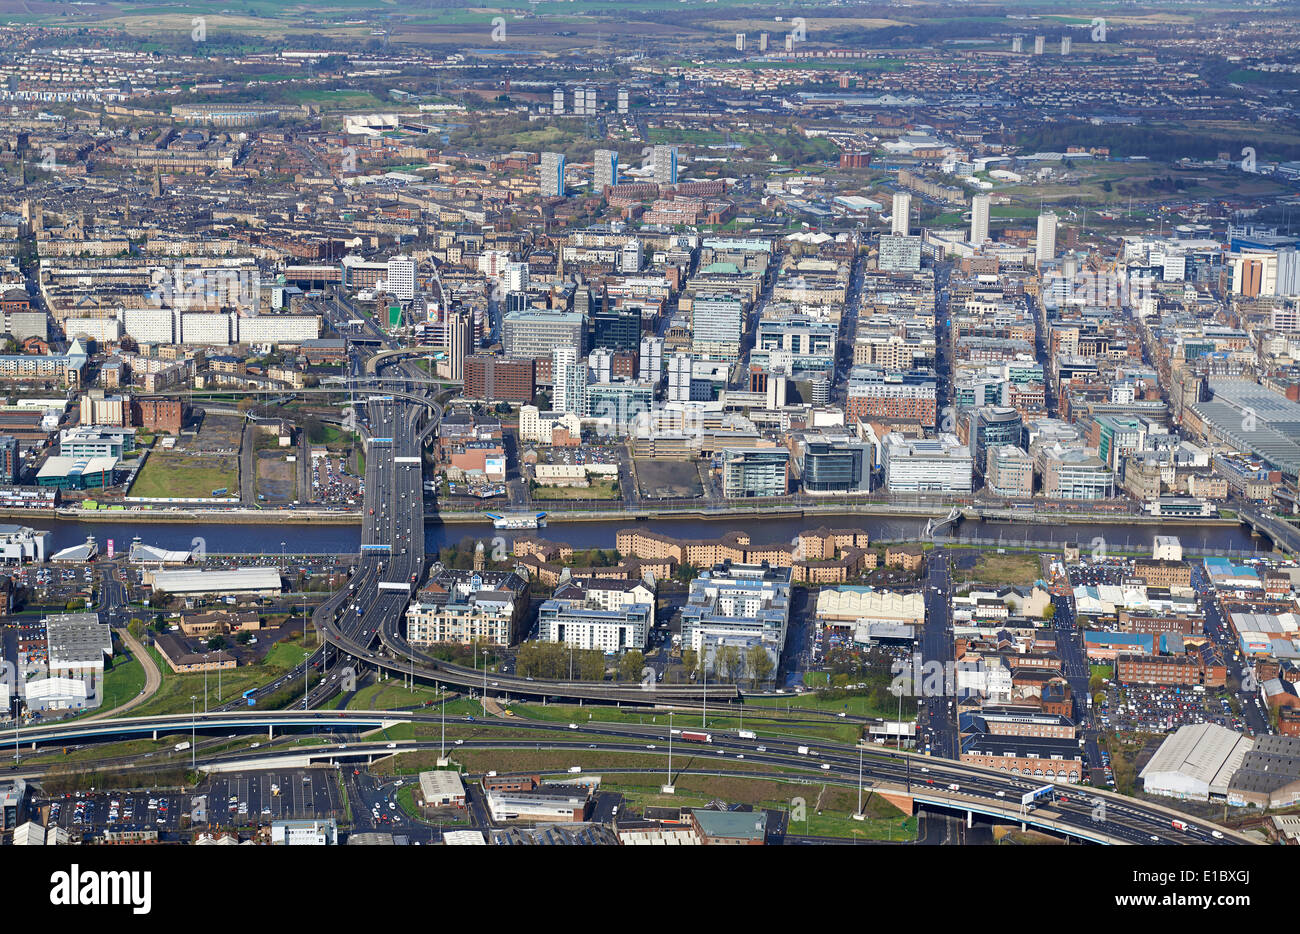 Glasgow City Centre from the air, Central Scotland, UK, from the south with the river Clyde and Kingston Bridge foreground - Stock Image